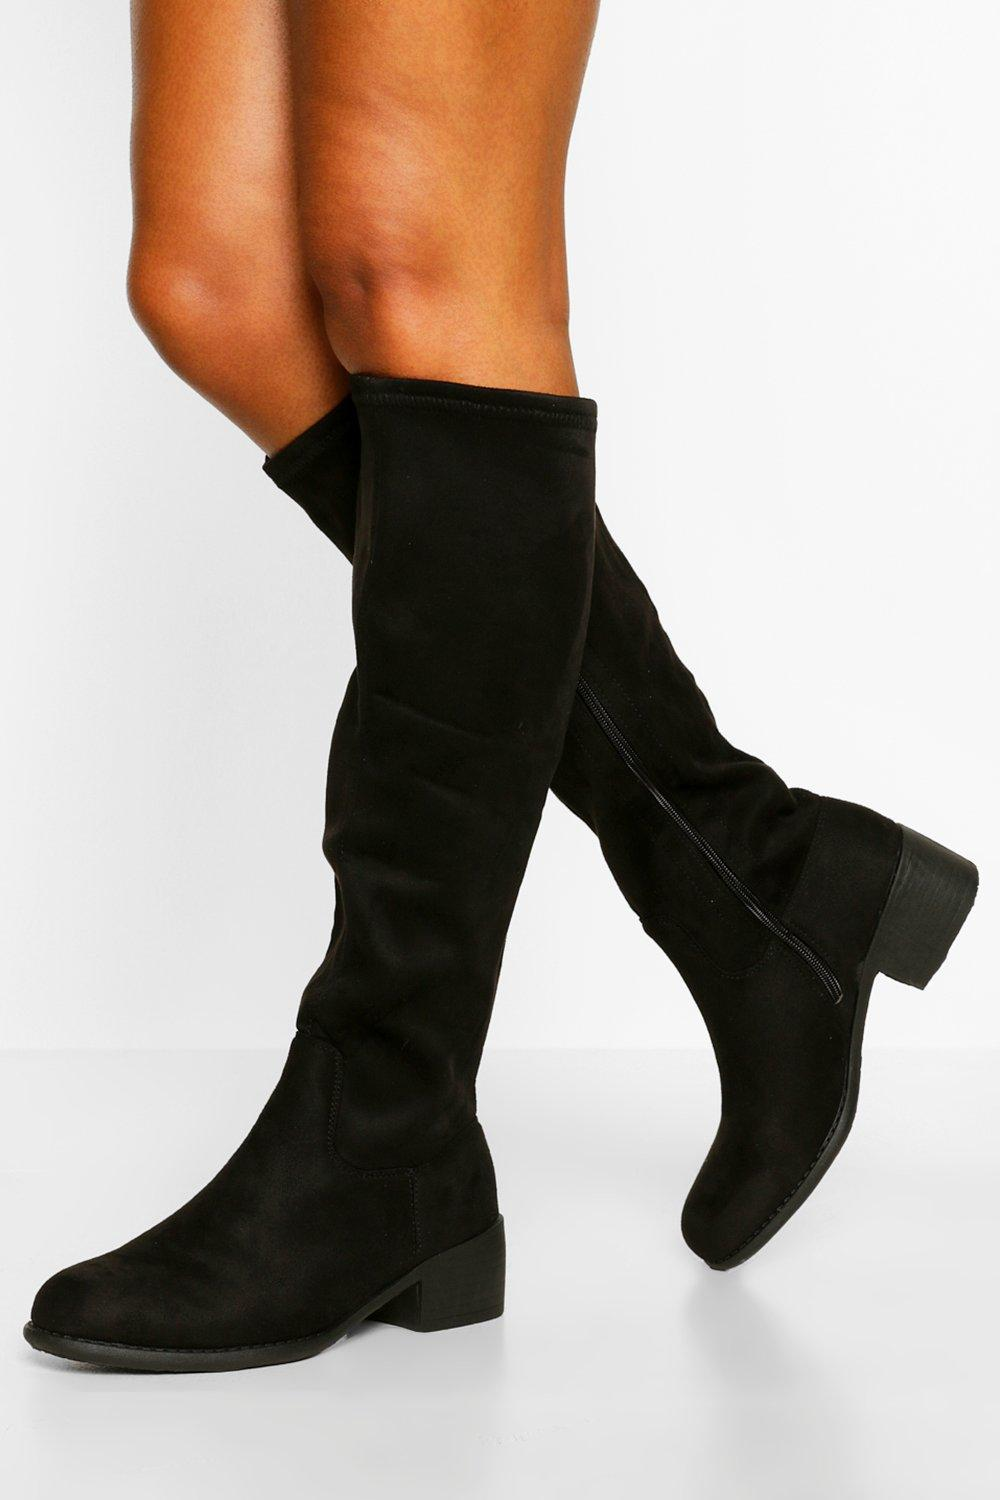 Vintage Boots- Buy Winter Retro Boots Womens Wide Fit Flat Knee High Boot - Black - 10 $49.00 AT vintagedancer.com